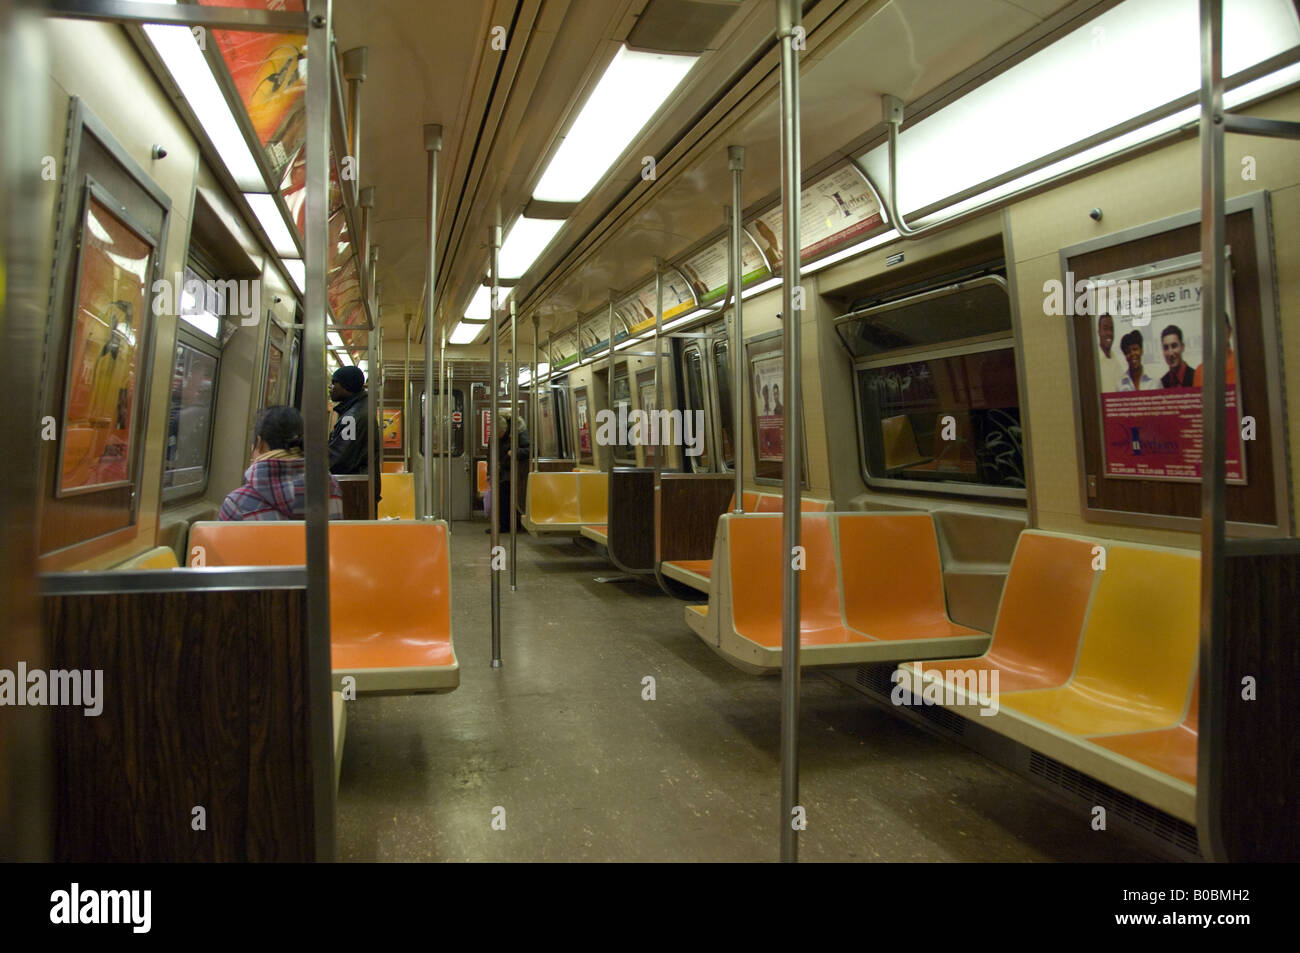 inside a subway car in manhattan new york stock photo royalty free image 17467998 alamy. Black Bedroom Furniture Sets. Home Design Ideas